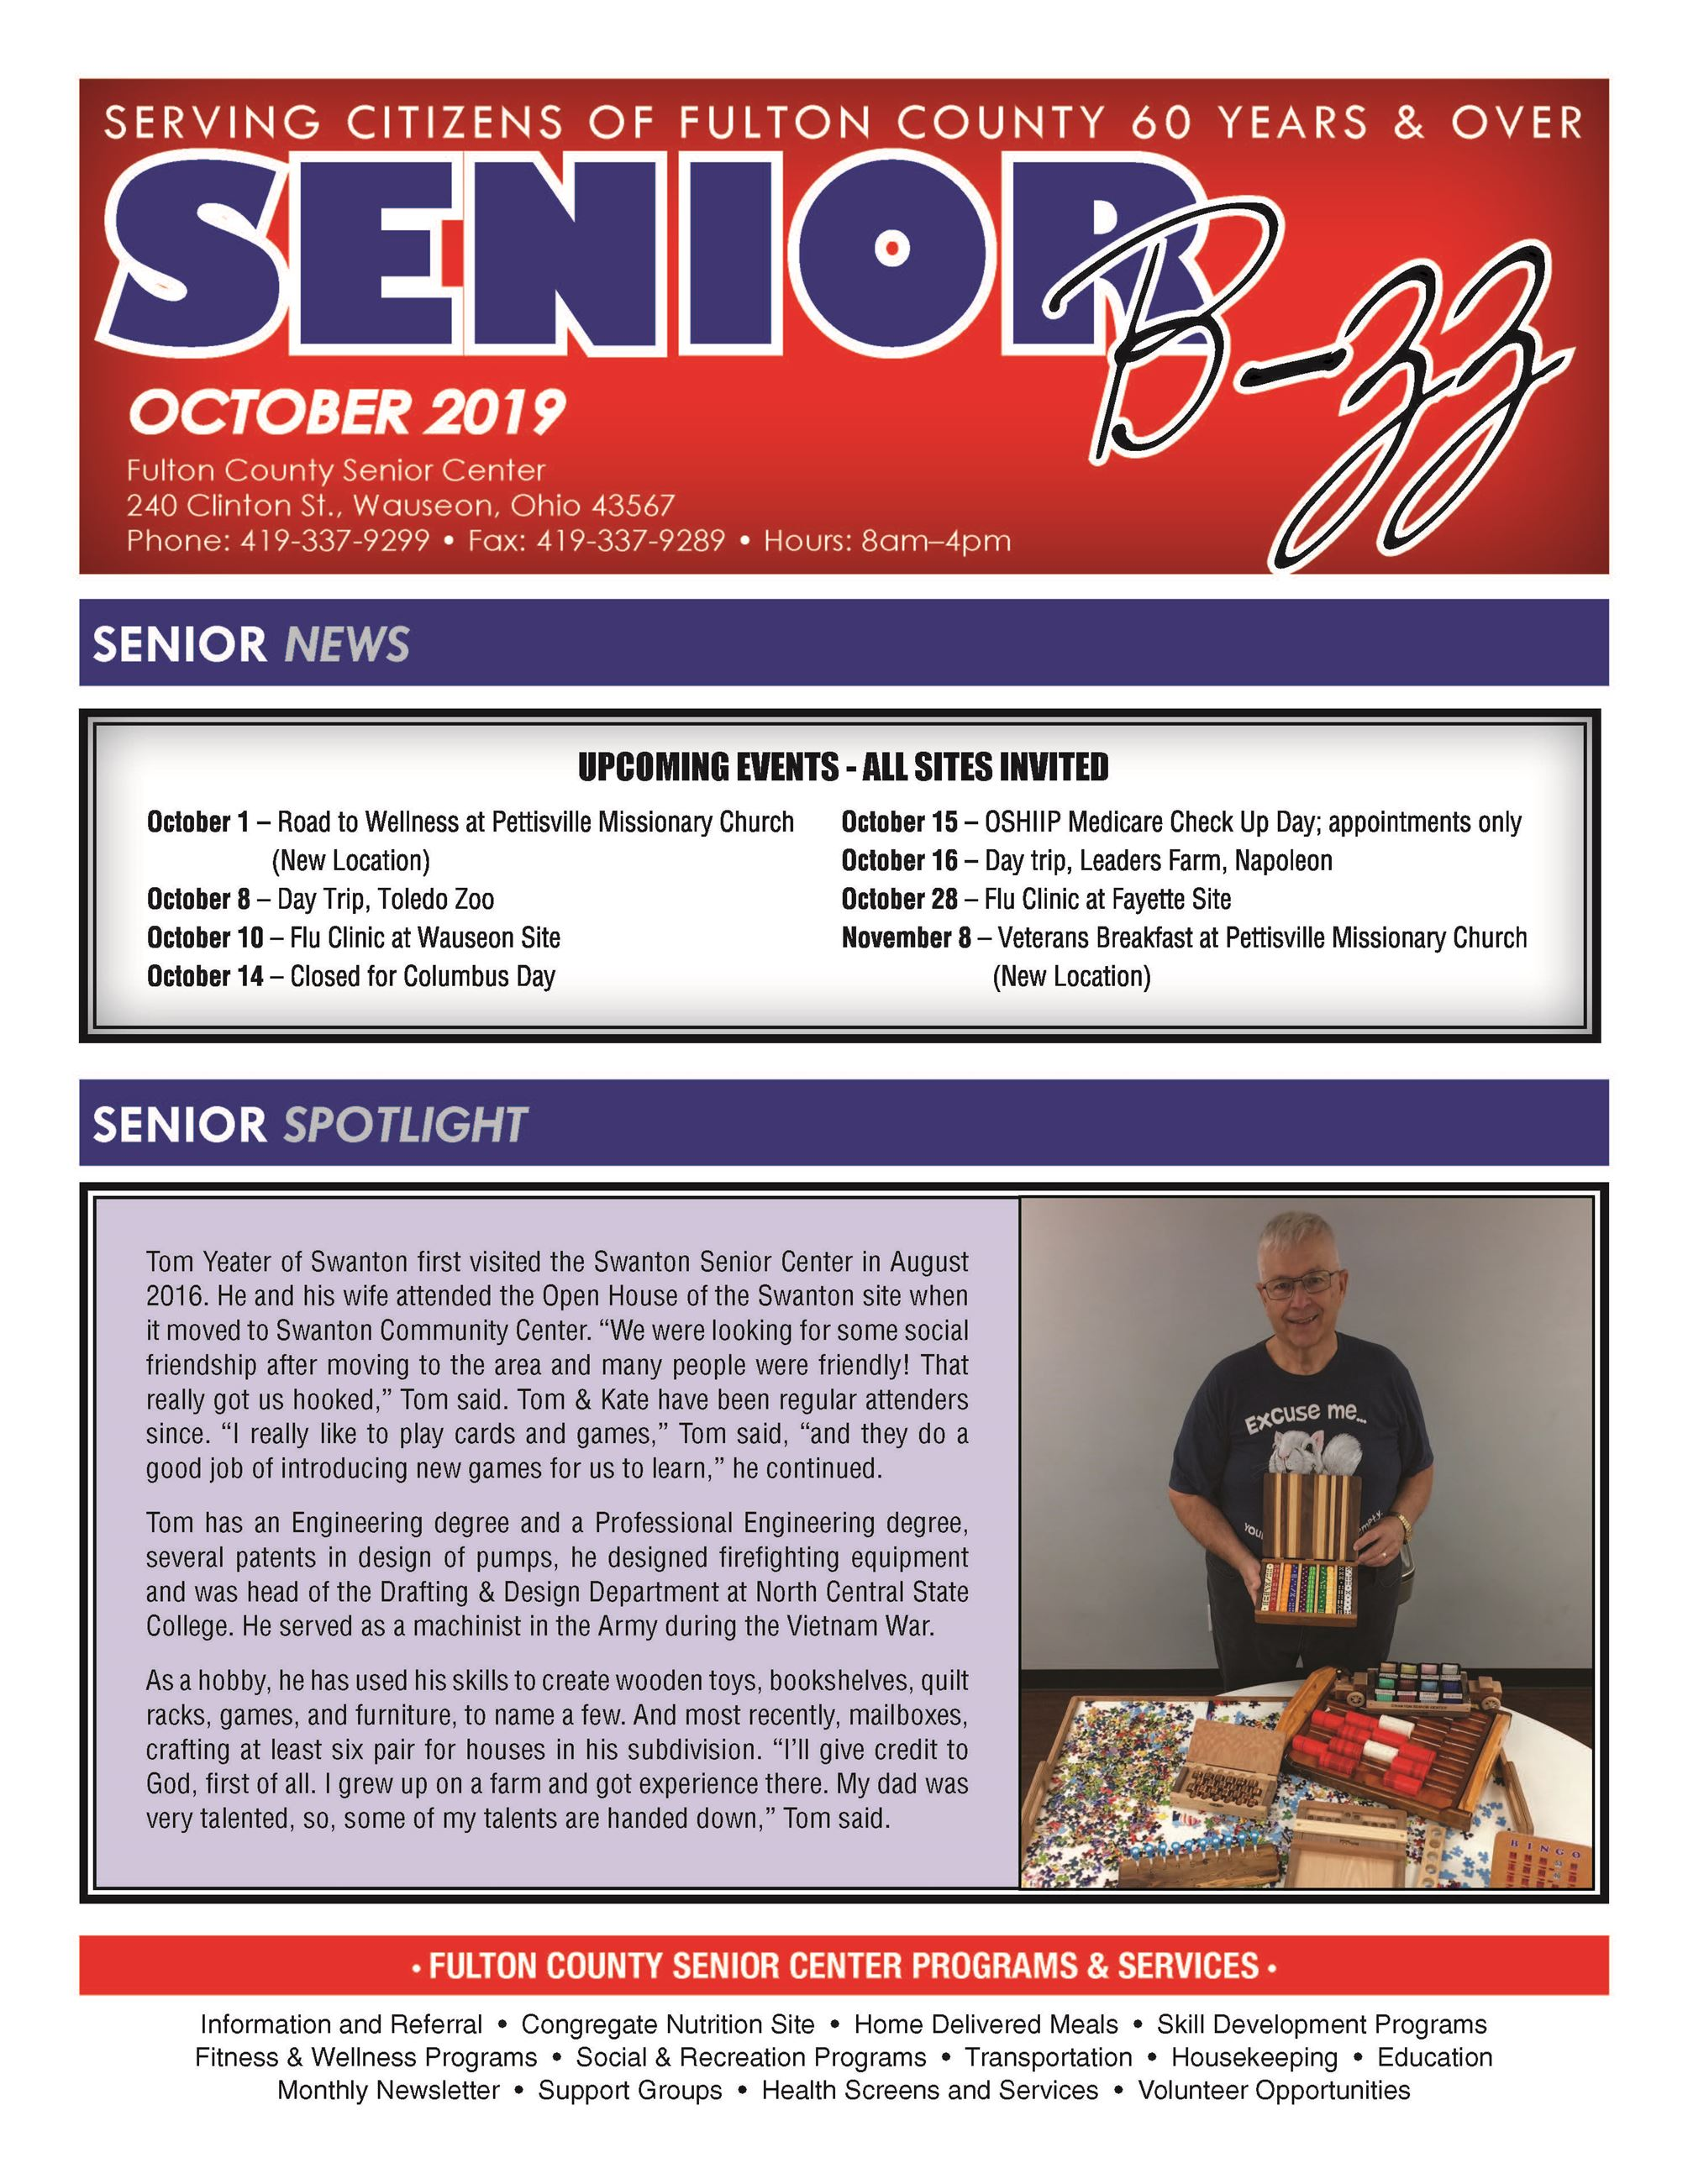 Front Page of October 2019 Senior B-zz